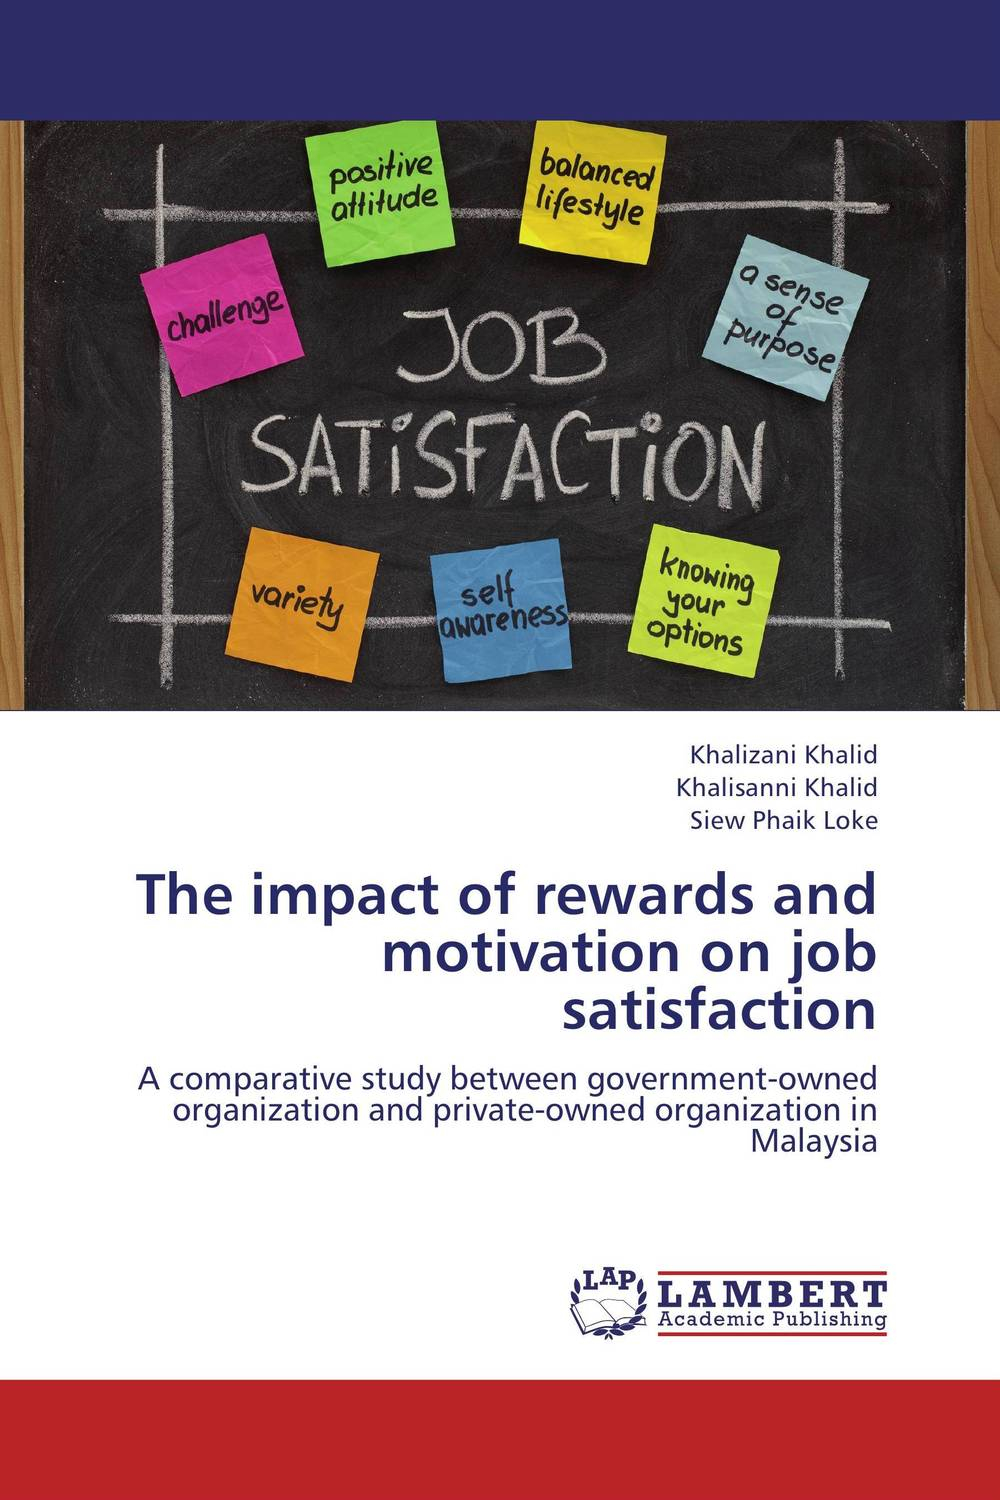 The impact of rewards and motivation on job satisfaction the impact of rewards and motivation on job satisfaction